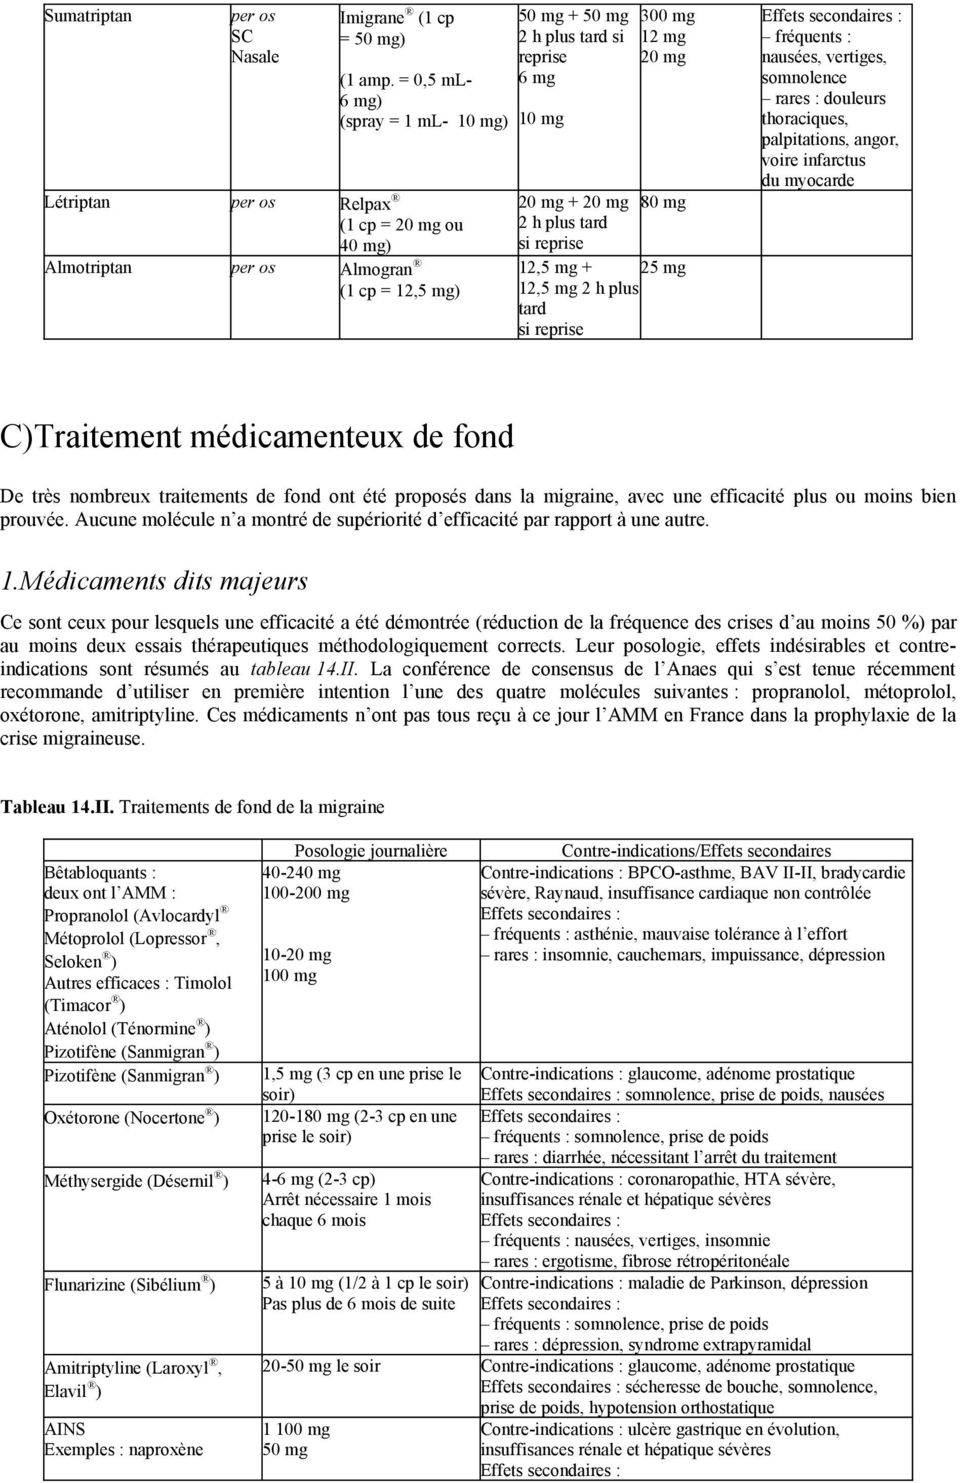 20 mg + 20 mg 80 mg 2 h plus tard si reprise 12,5 mg + 25 mg 12,5 mg 2 h plus tard si reprise Effets secondaires : fréquents : nausées, vertiges, somnolence rares : douleurs thoraciques,